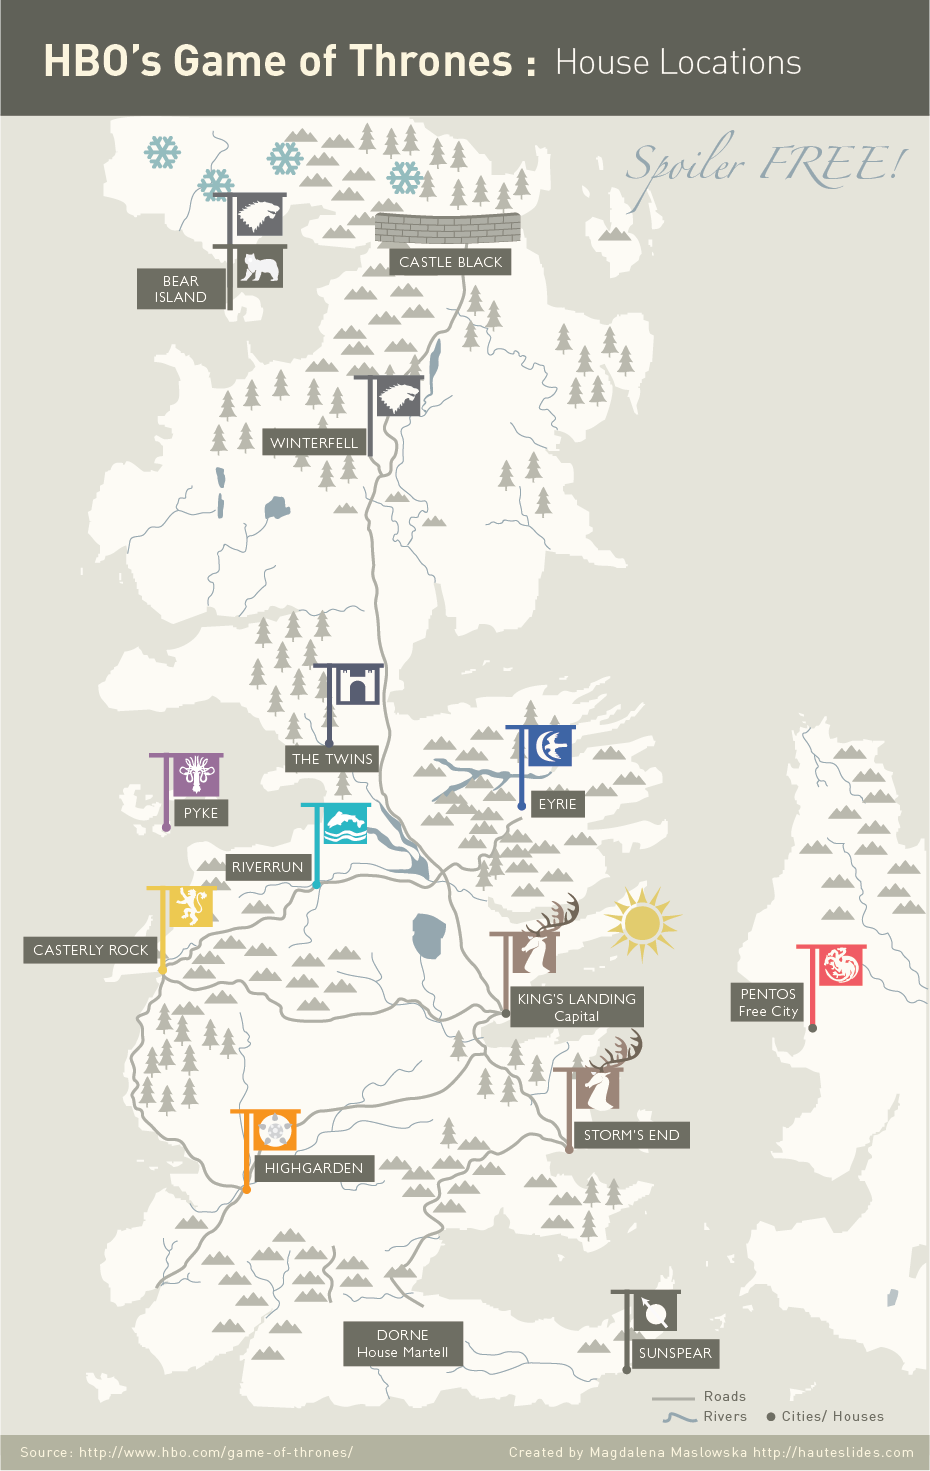 Game of thrones map of House locations   Infographic in 2019 ... Game Of Thrones Map With Houses on game of thrones westeros map, board game of thrones map, game of thrones relationship map,